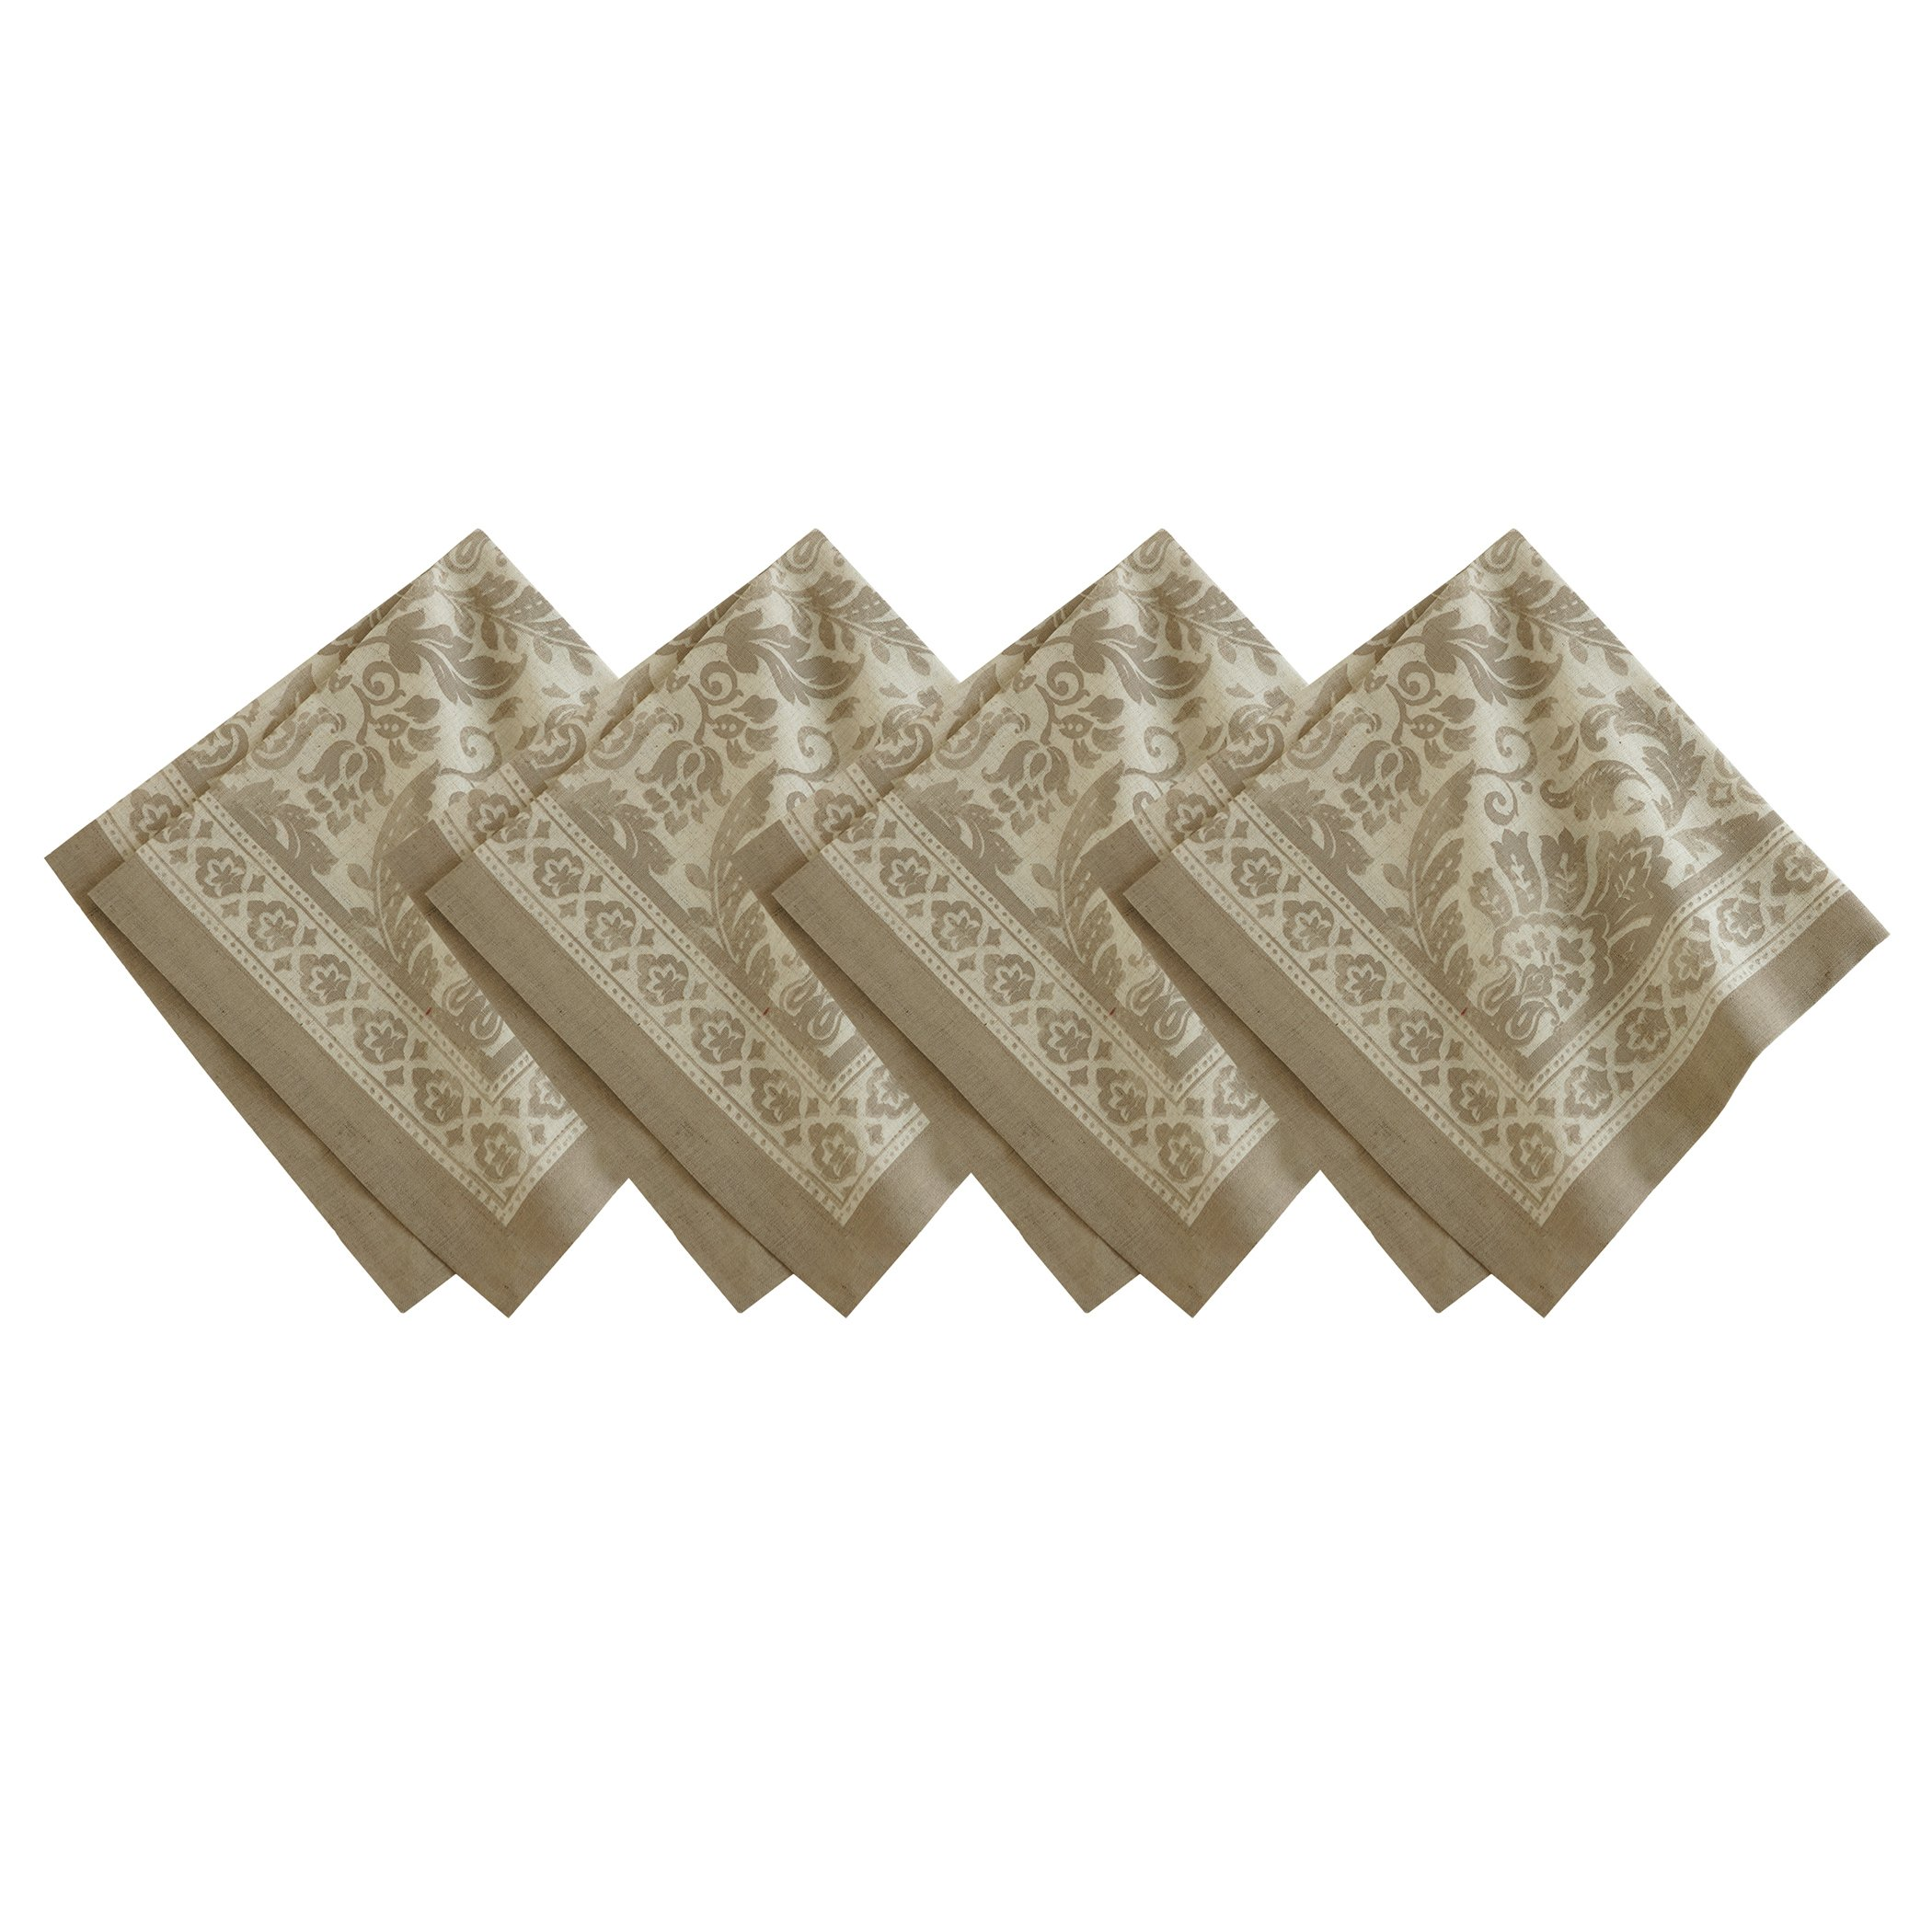 Villeroy and Boch Milano Print Cotton Fabric Napkin (Set of 4), 21''x21'', Taupe